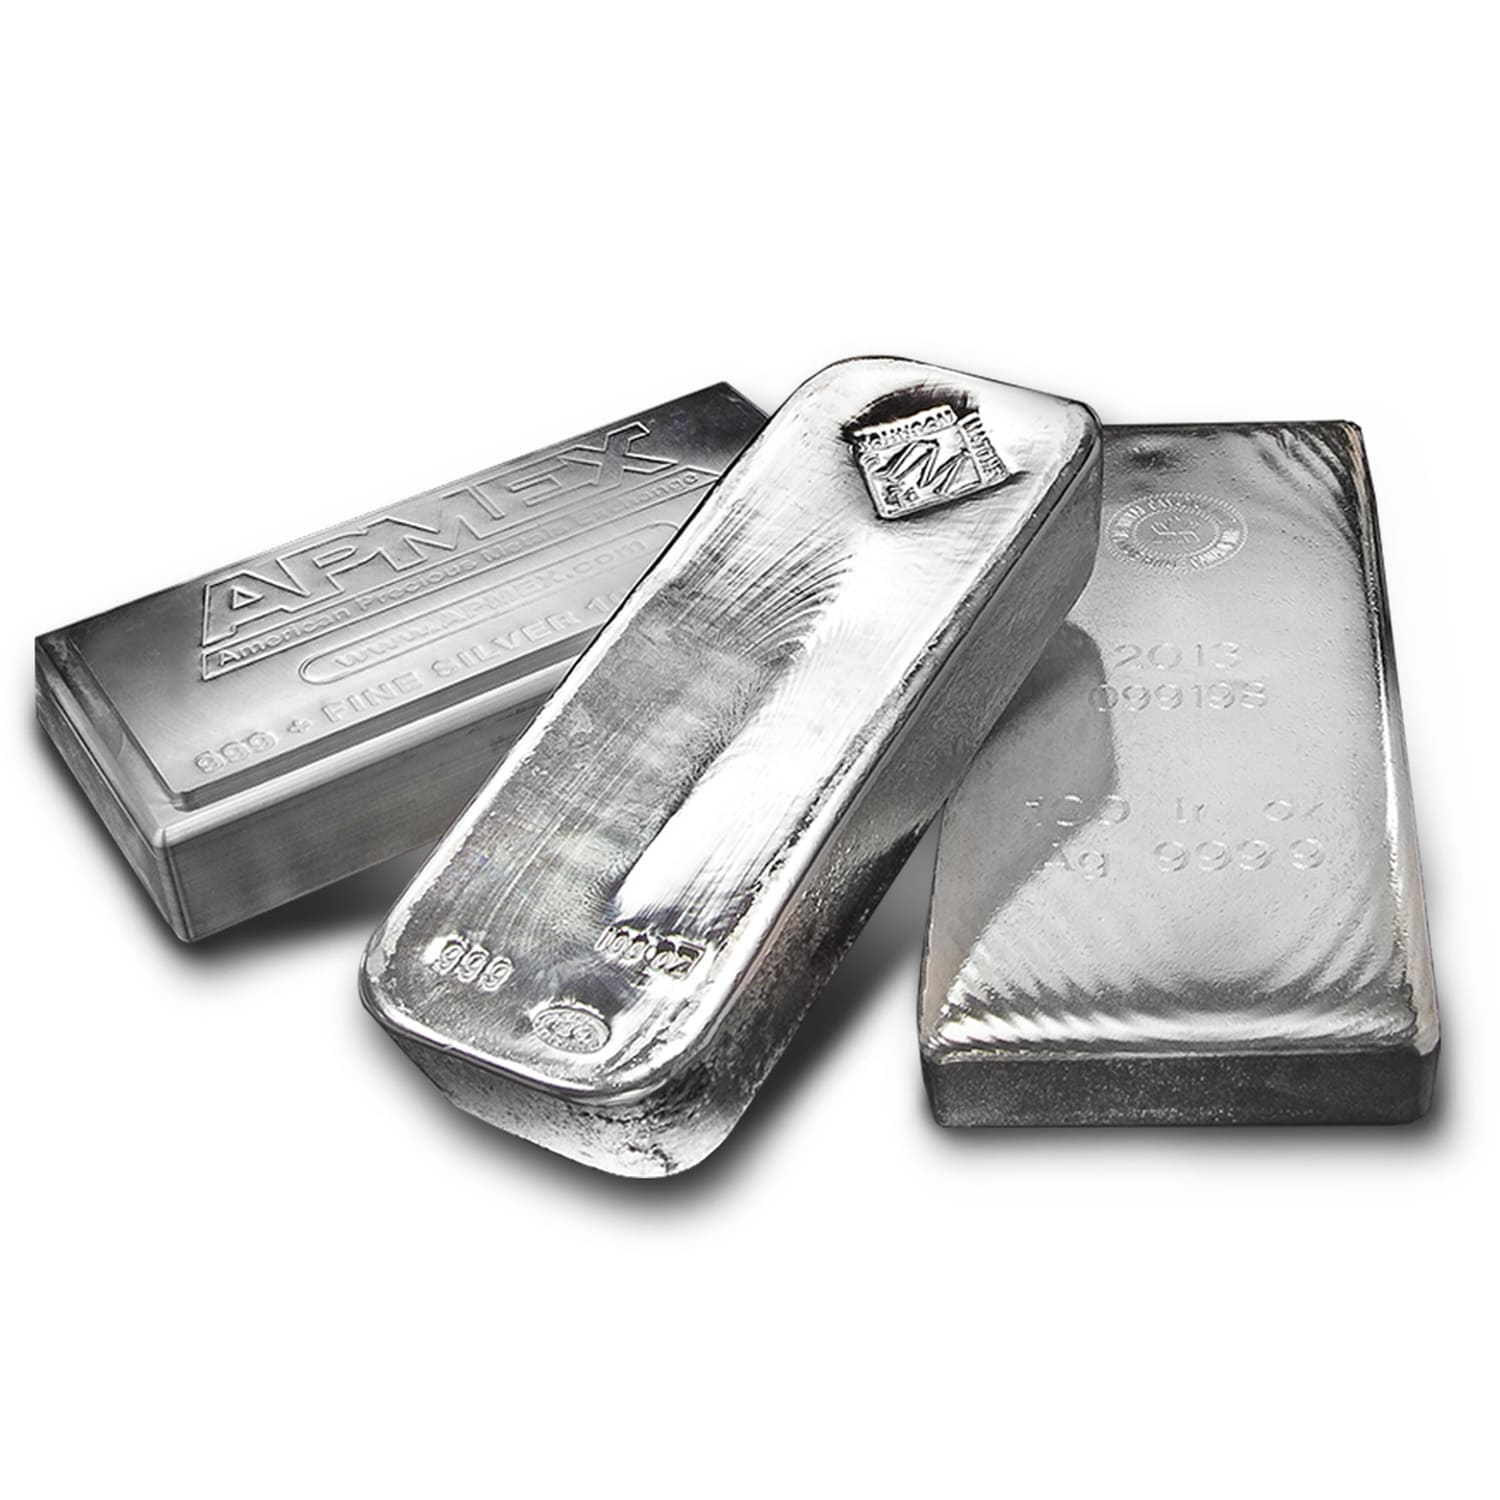 102.85 oz Silver Bars - Secondary Market